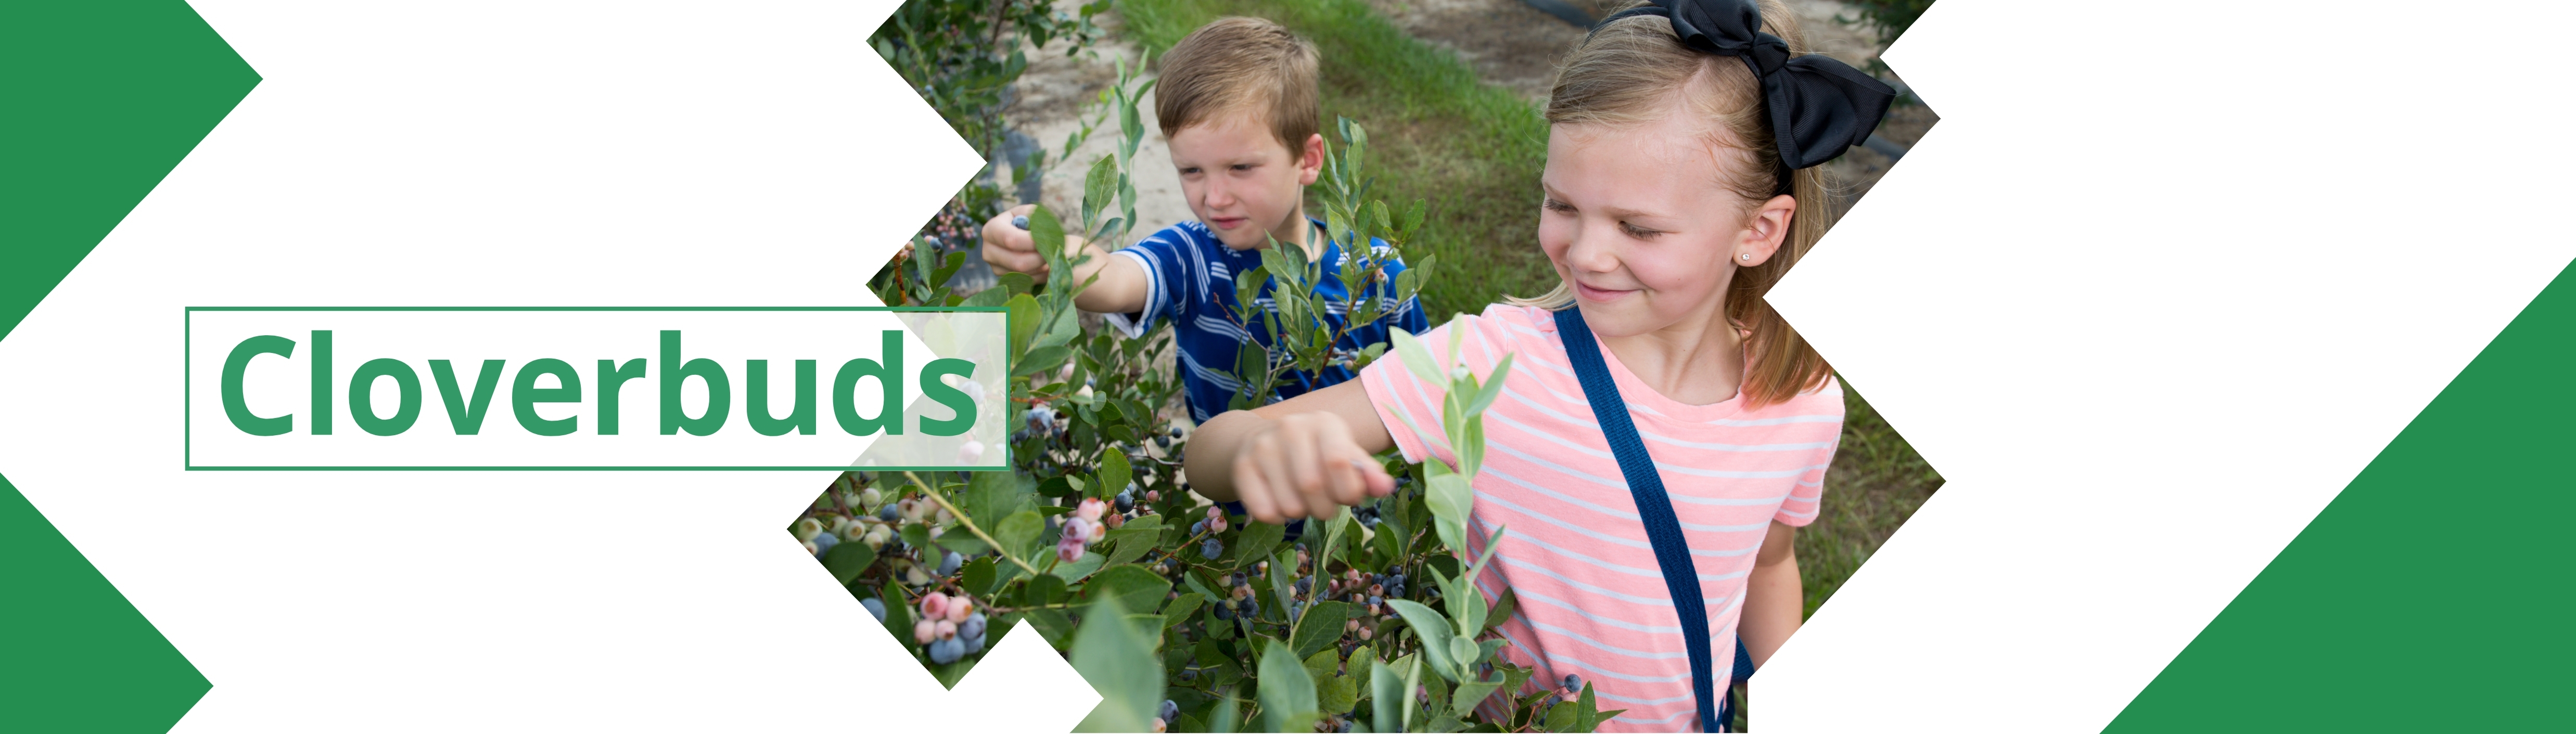 Banner image with 2 youth picking blueberries